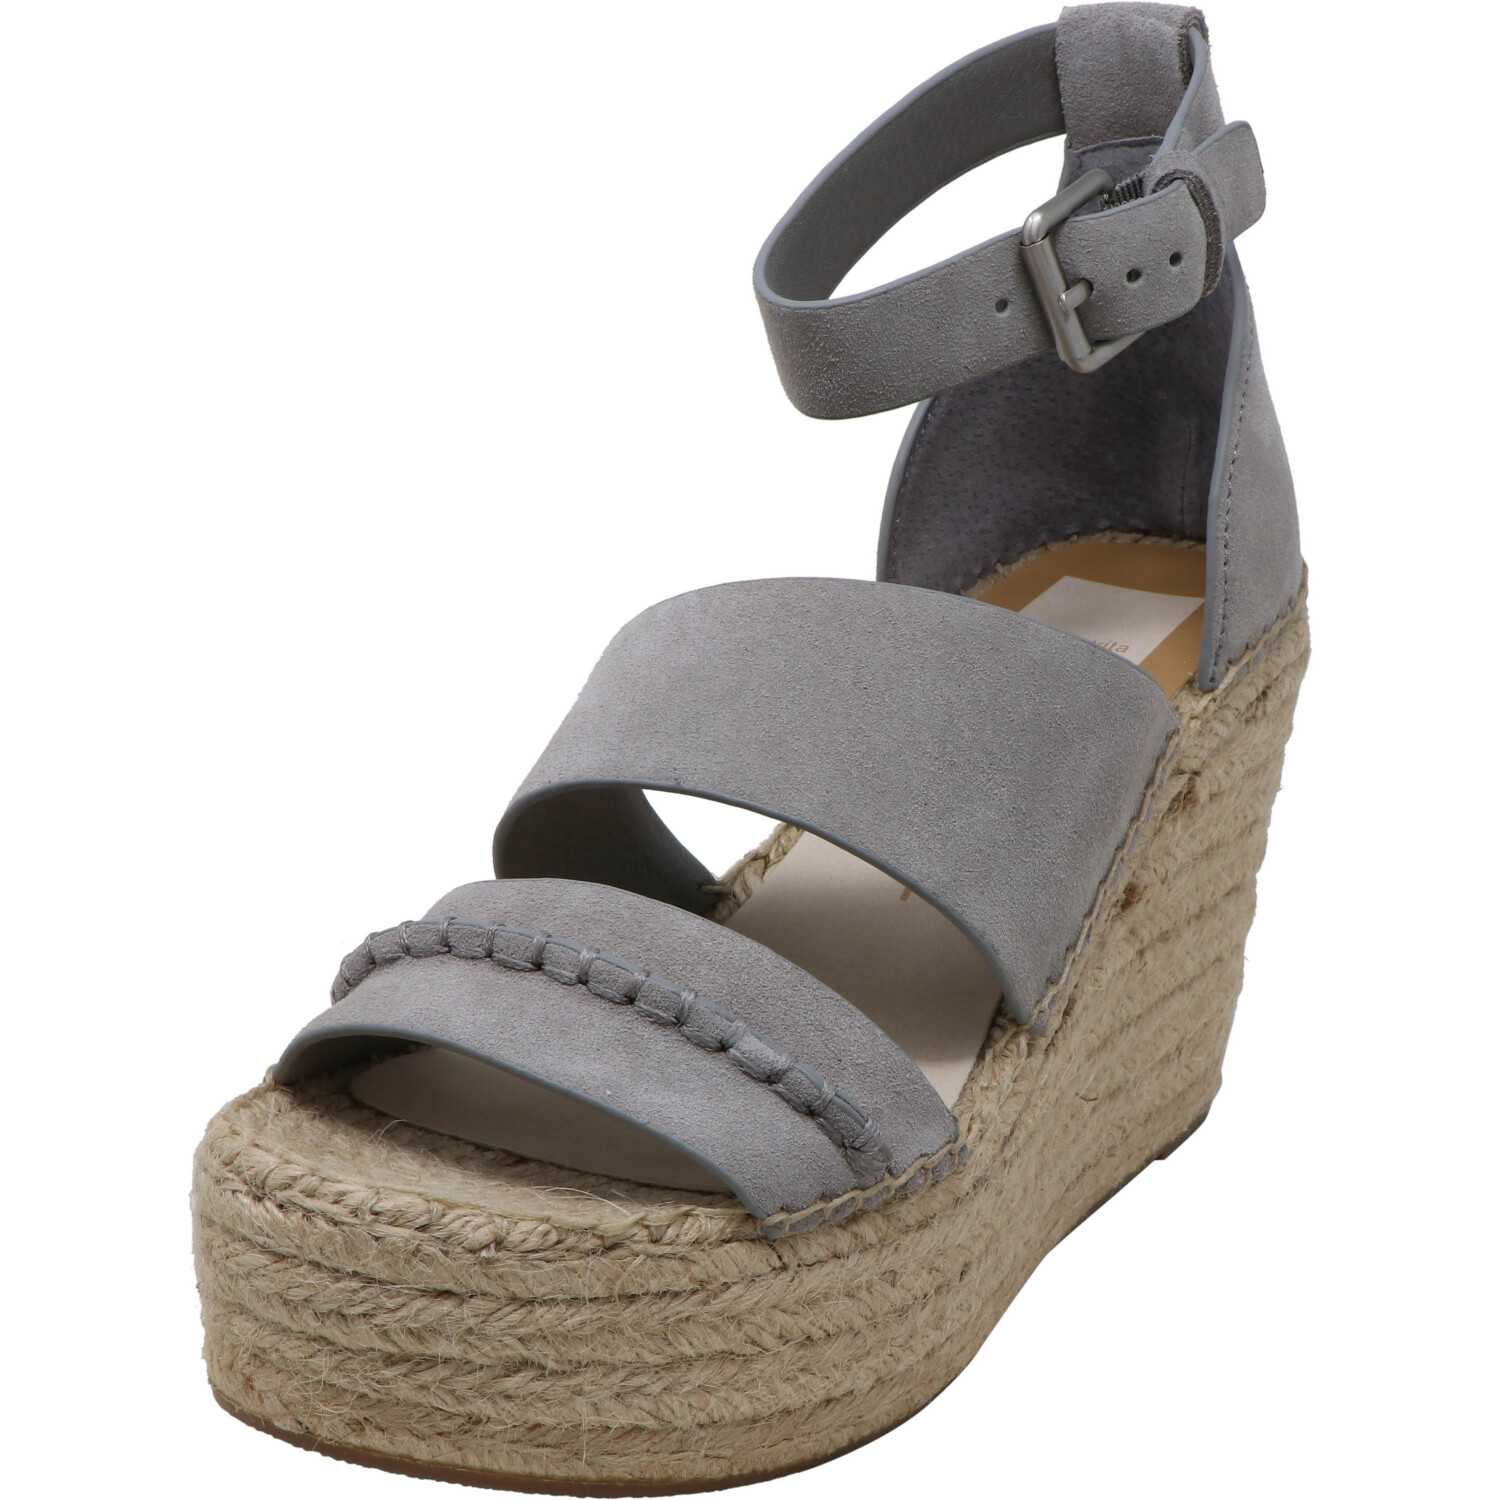 Dolce Vita Women's Simi Suede Smoke Ankle-High Wedged Sandal - 10M